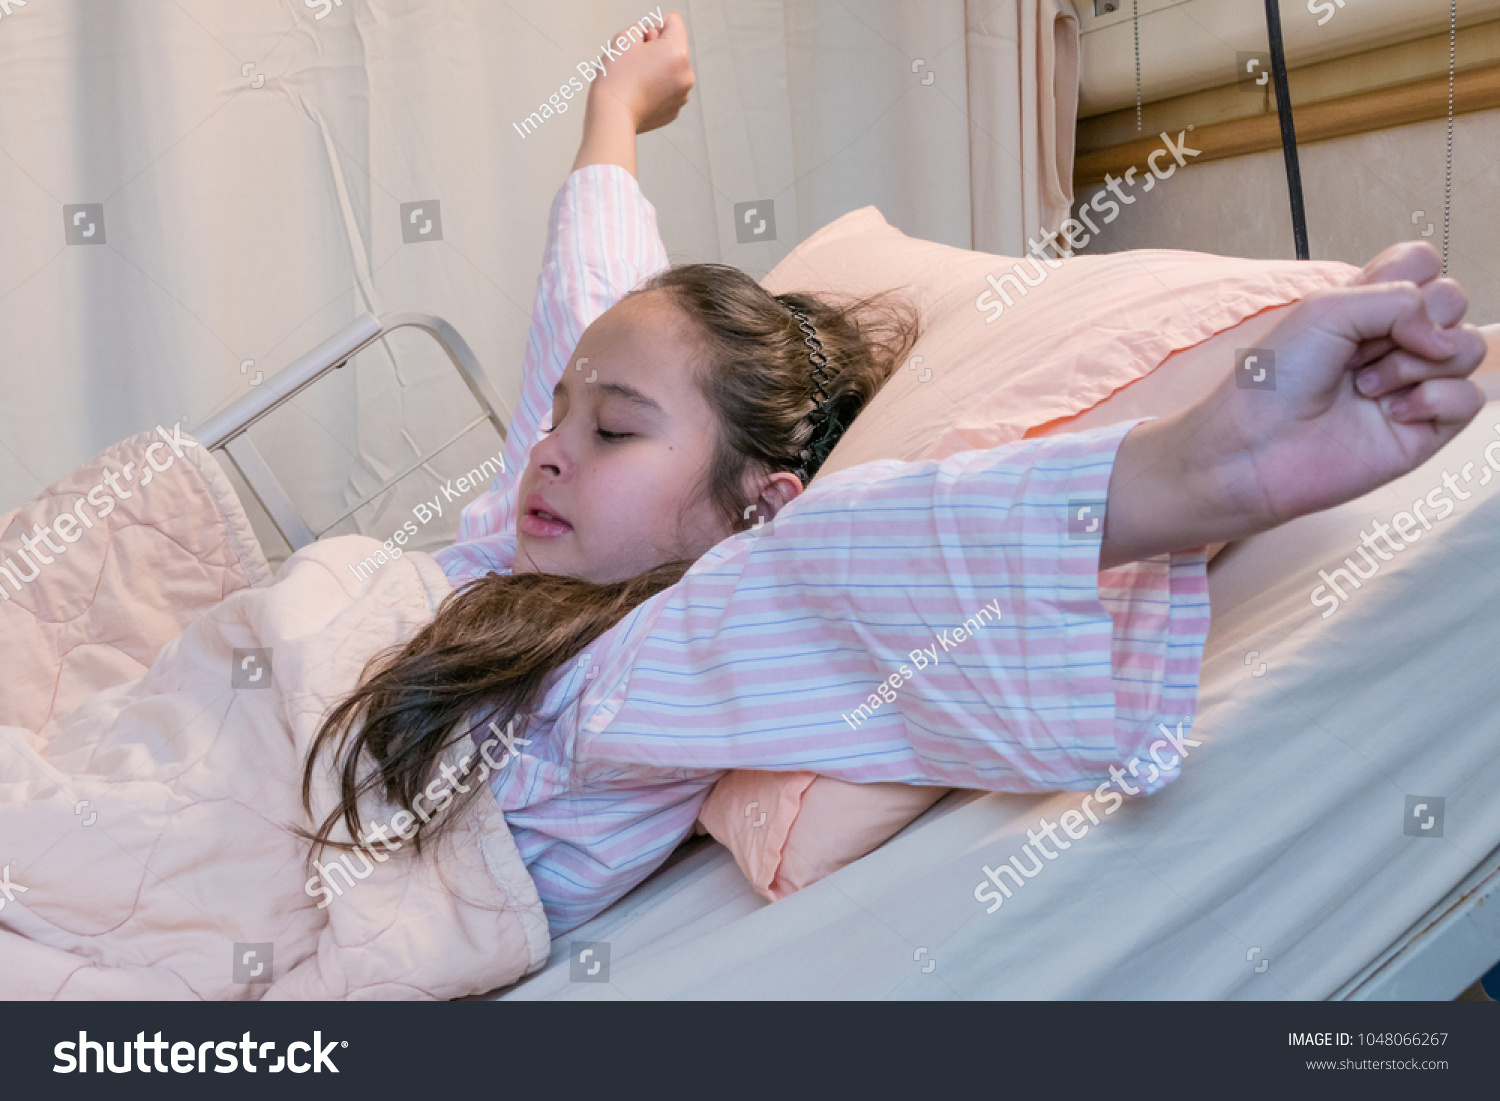 Mixed race Asian American tween girl stretching on hospital bed